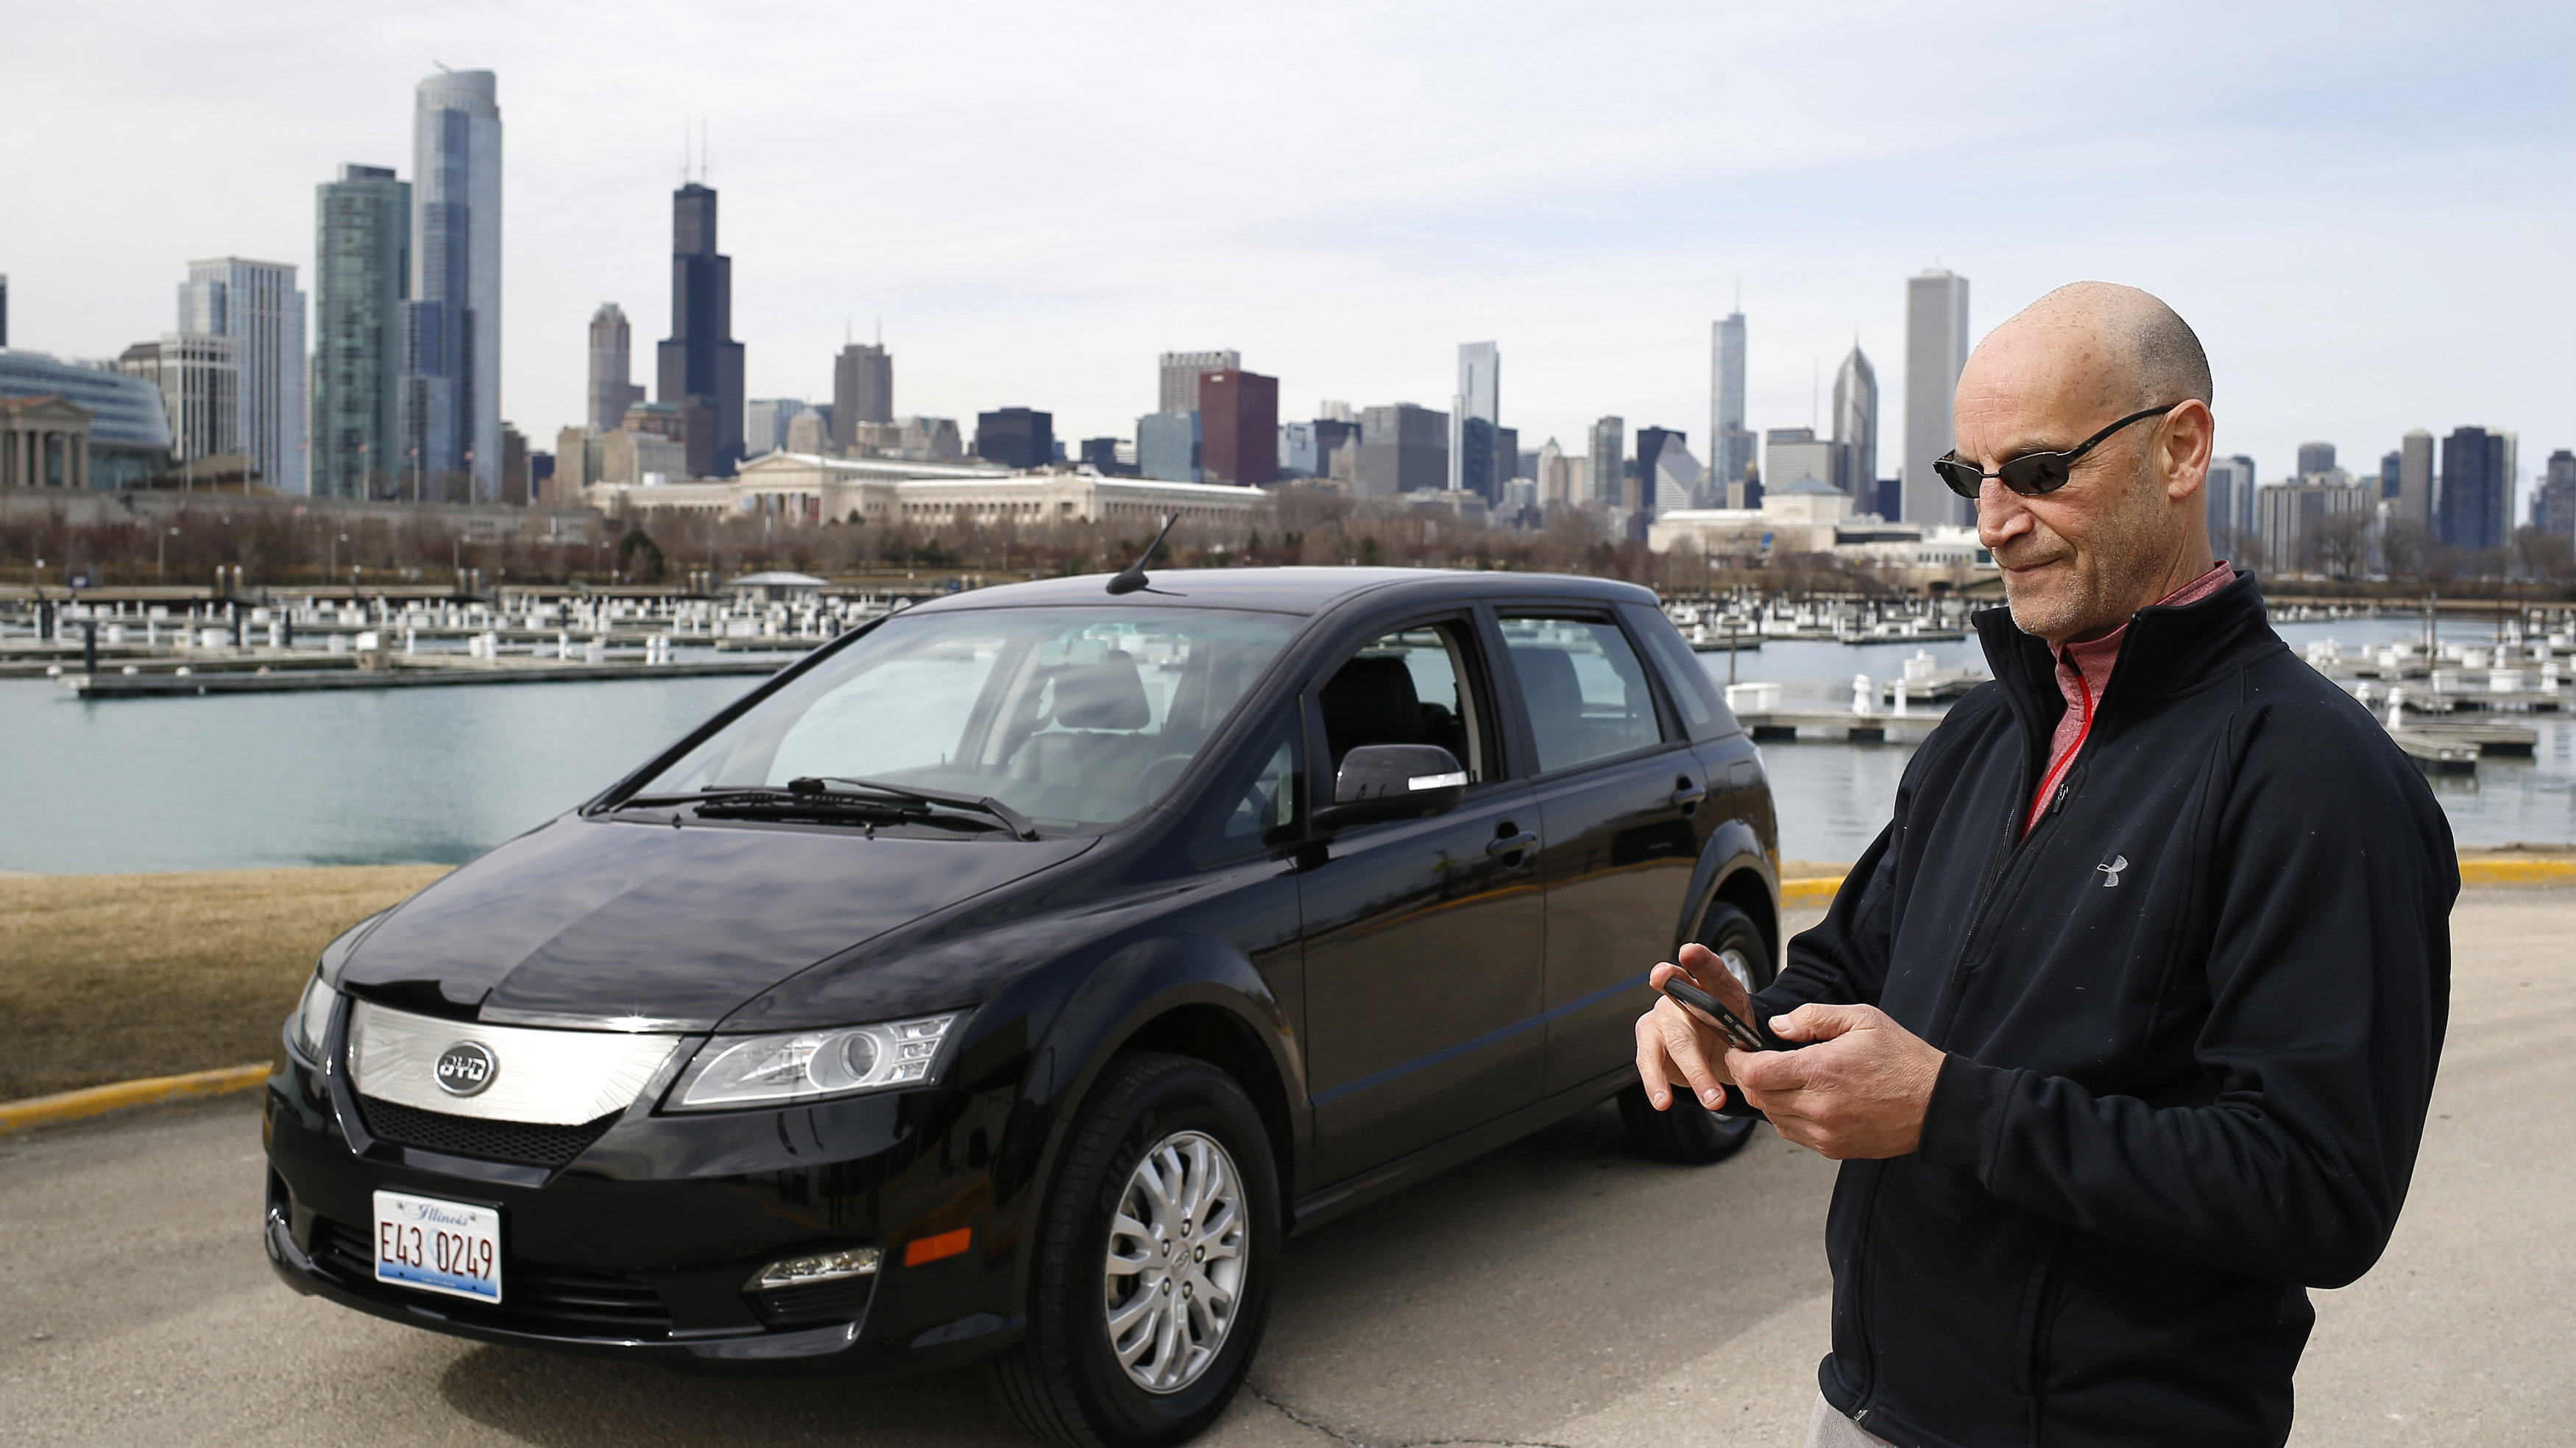 Uber driver Glen Snower looks at his phone next to a BYD e6 electric car in Chicago, Illinois March 18, 2015. Uber, which allows users to summon rides on their smartphones, struck a deal with Chinese automaker BYD Co Ltd to test a fleet of electric cars for its drivers.